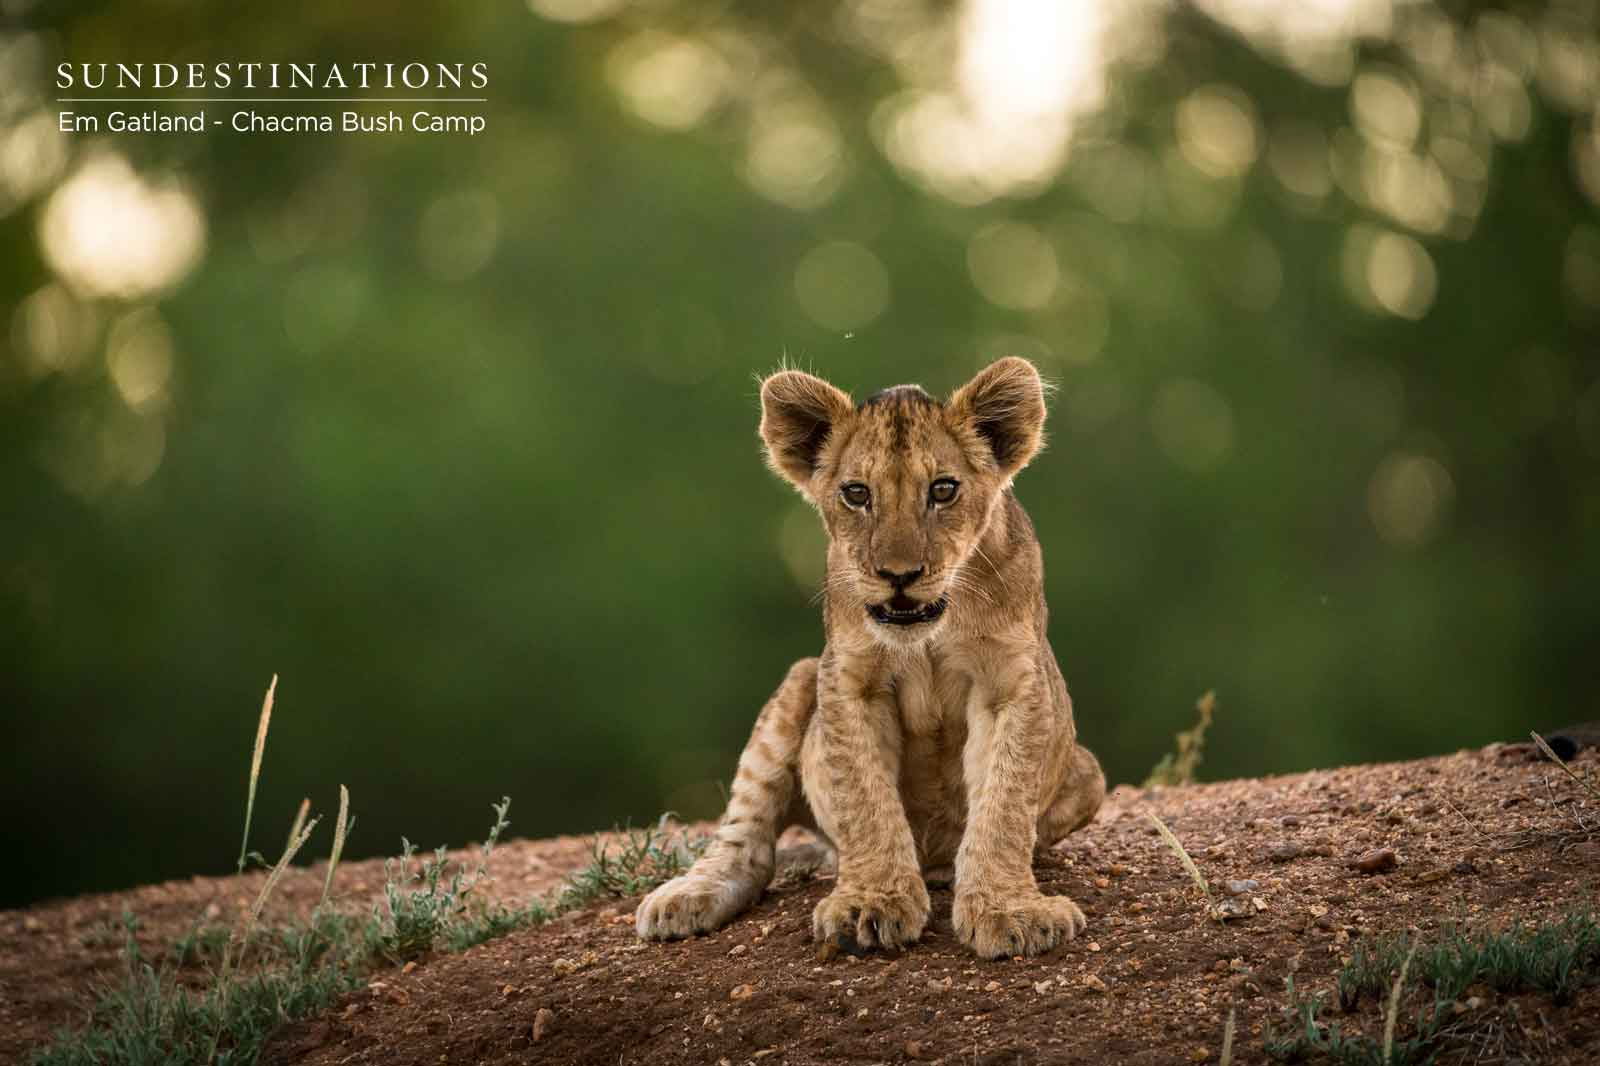 Our Top 14 Most Instagrammable Lion Cub Images from Chacma